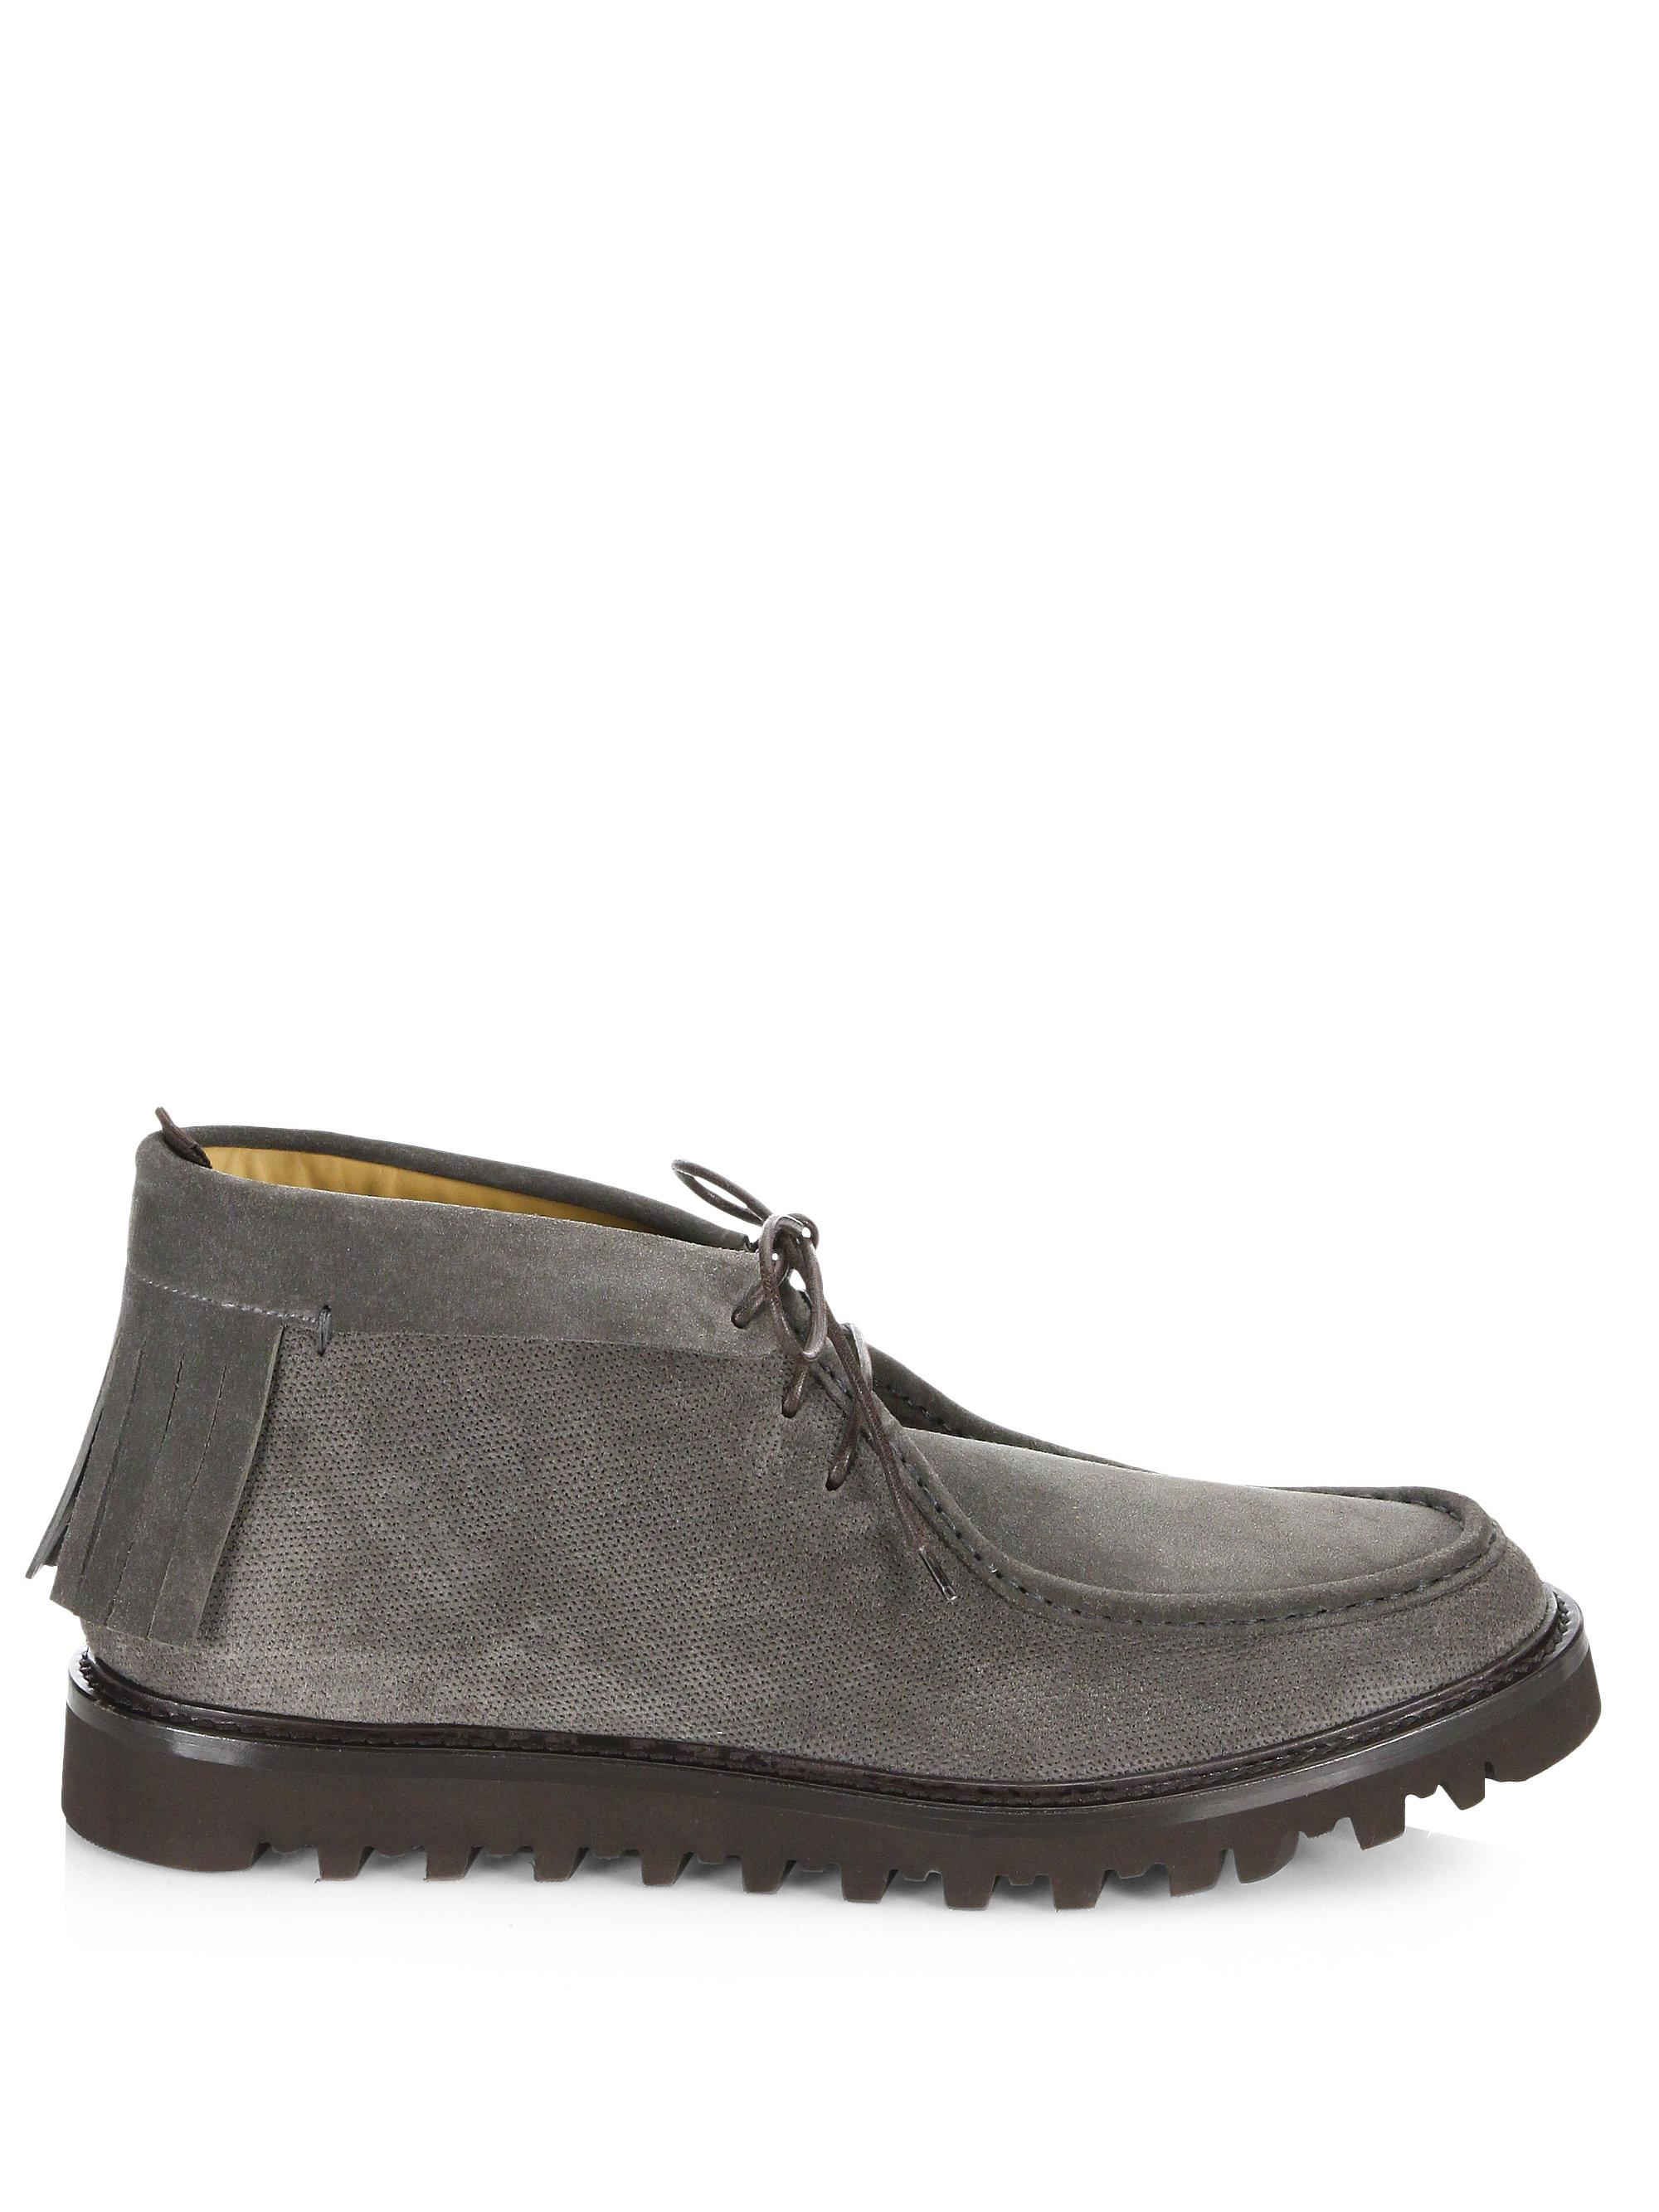 Armani Thick Sole Leather Chukka Moccasins HThJcpE